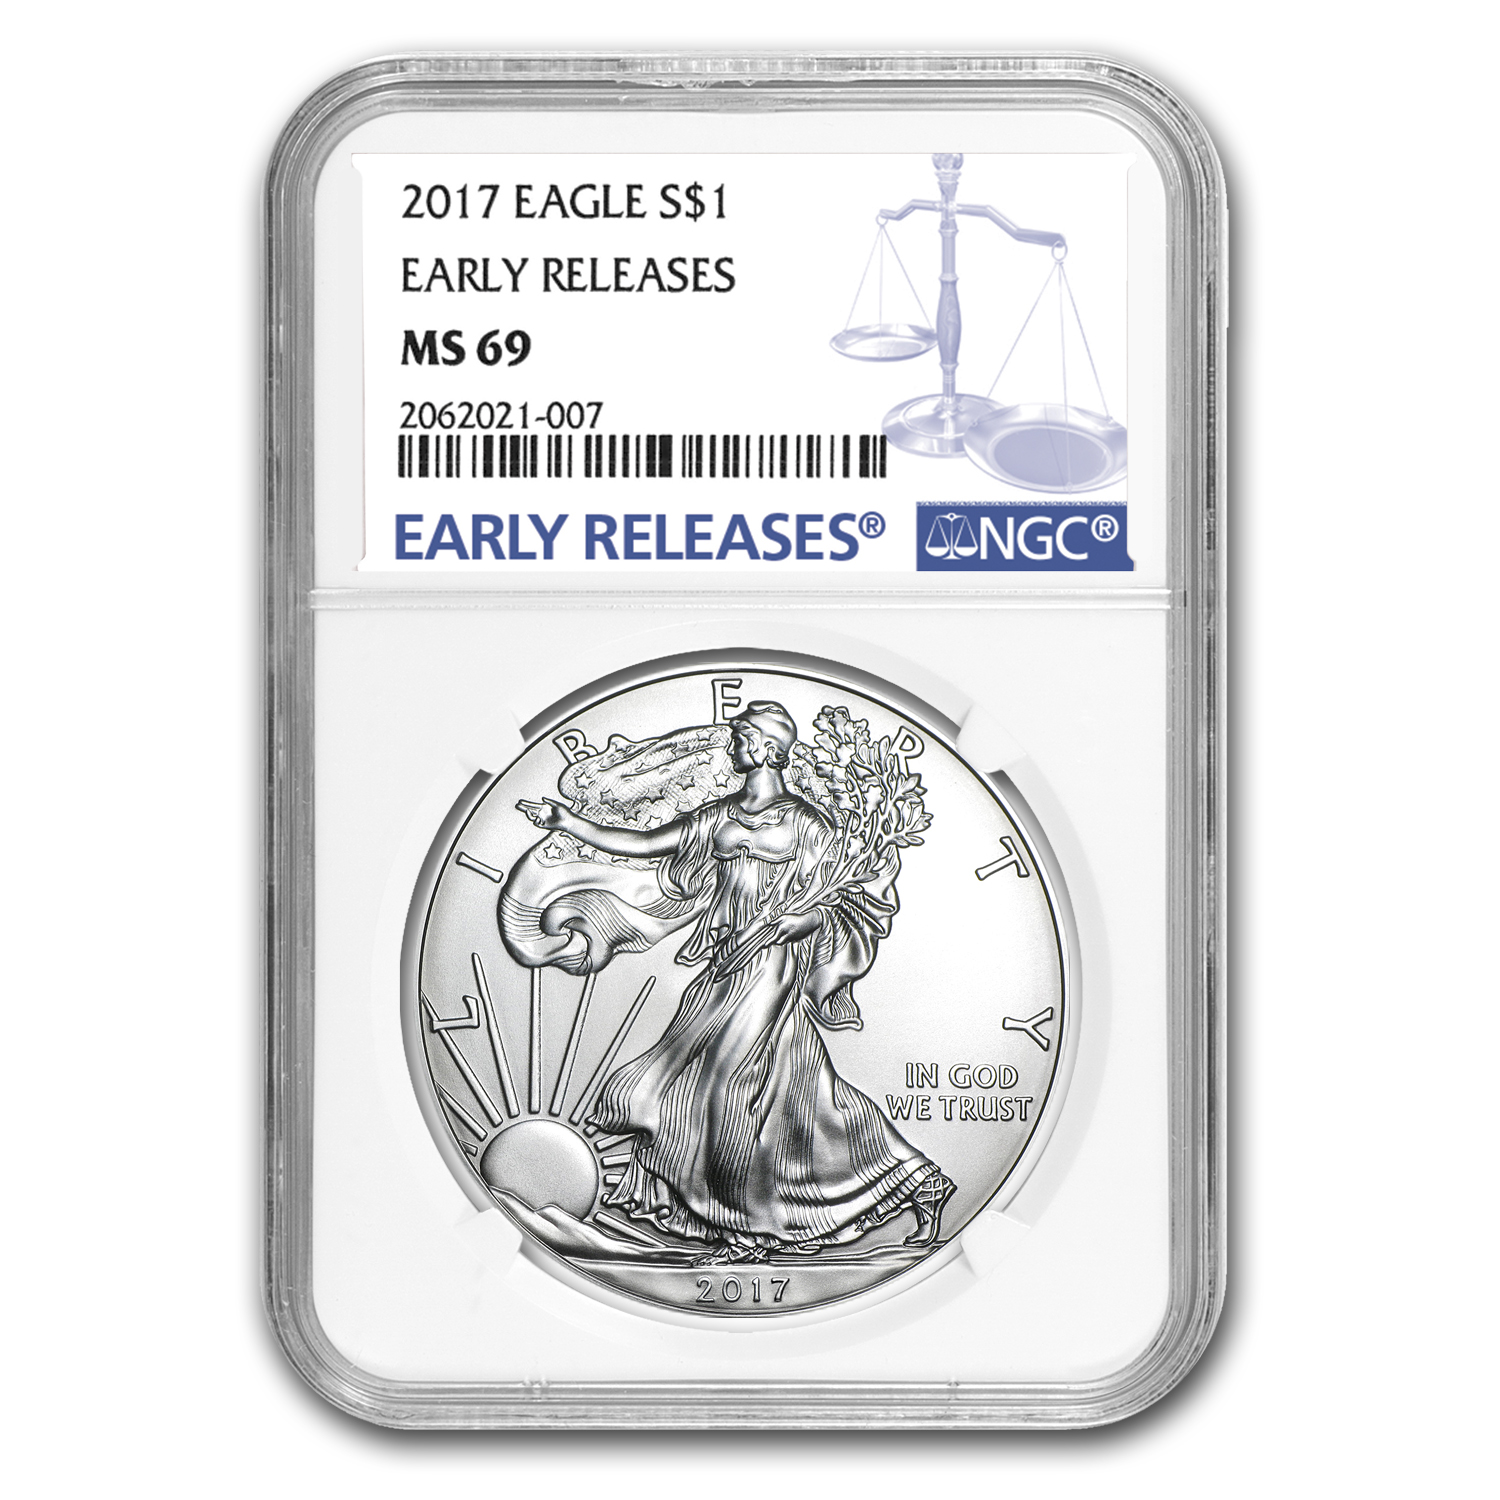 2017 Silver American Eagle MS-69 NGC (Early Releases)